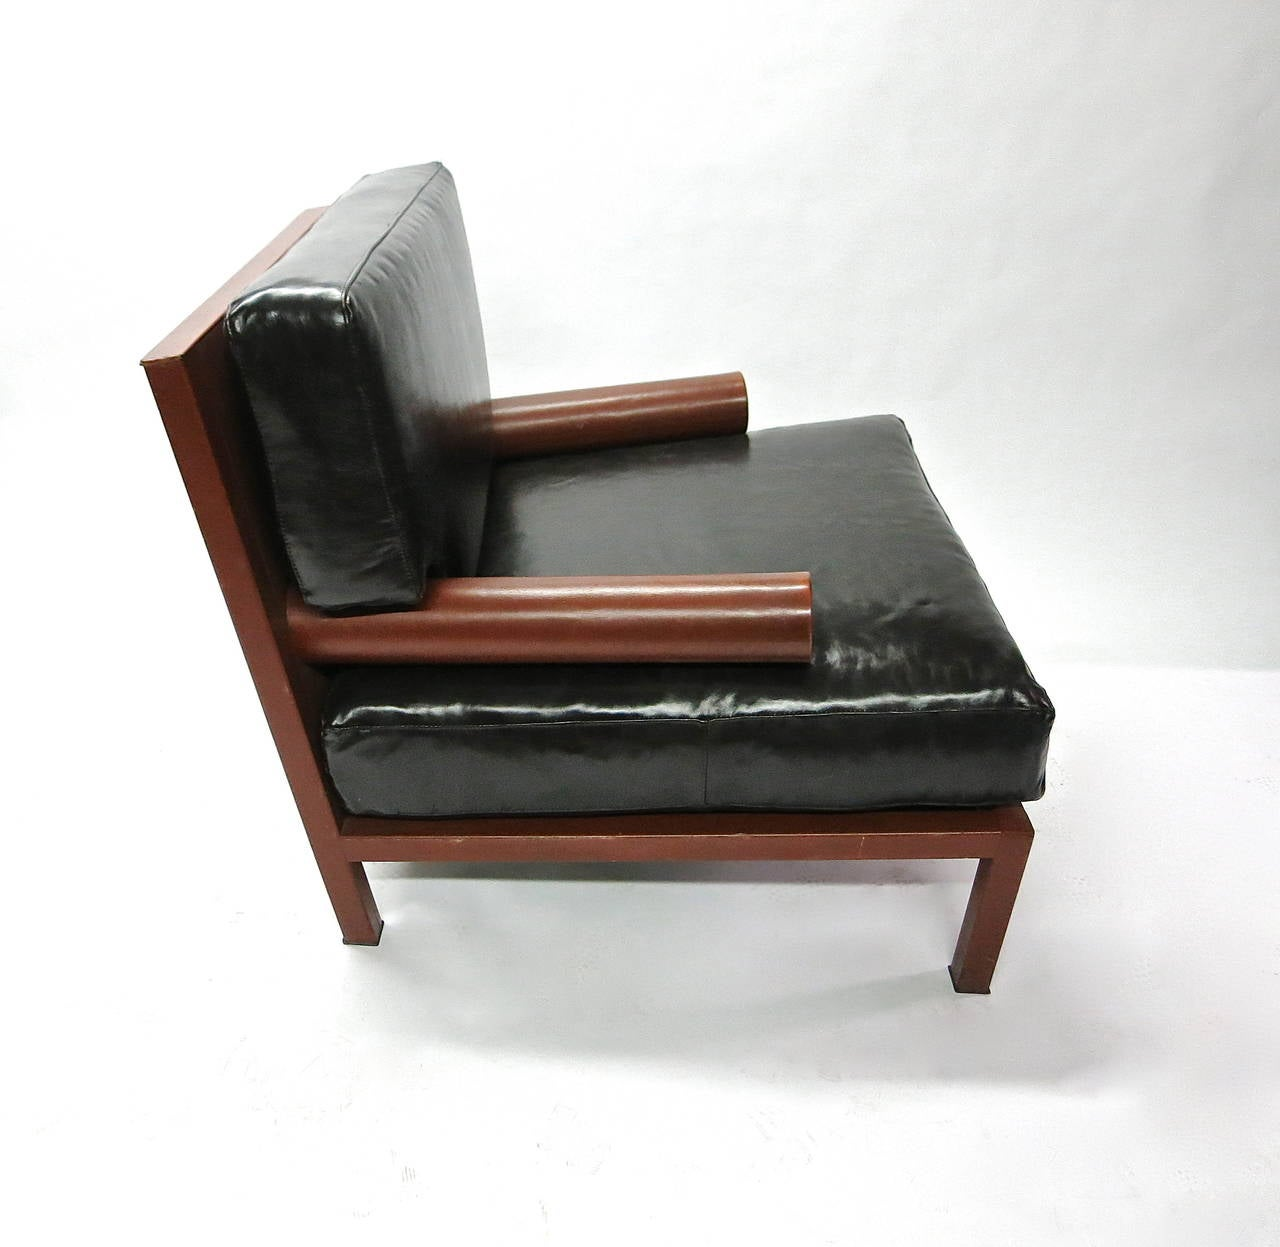 Italian Oversized Chair Designed by Antonio Citterio for B&B Italia, Made in Italy, 1987 For Sale